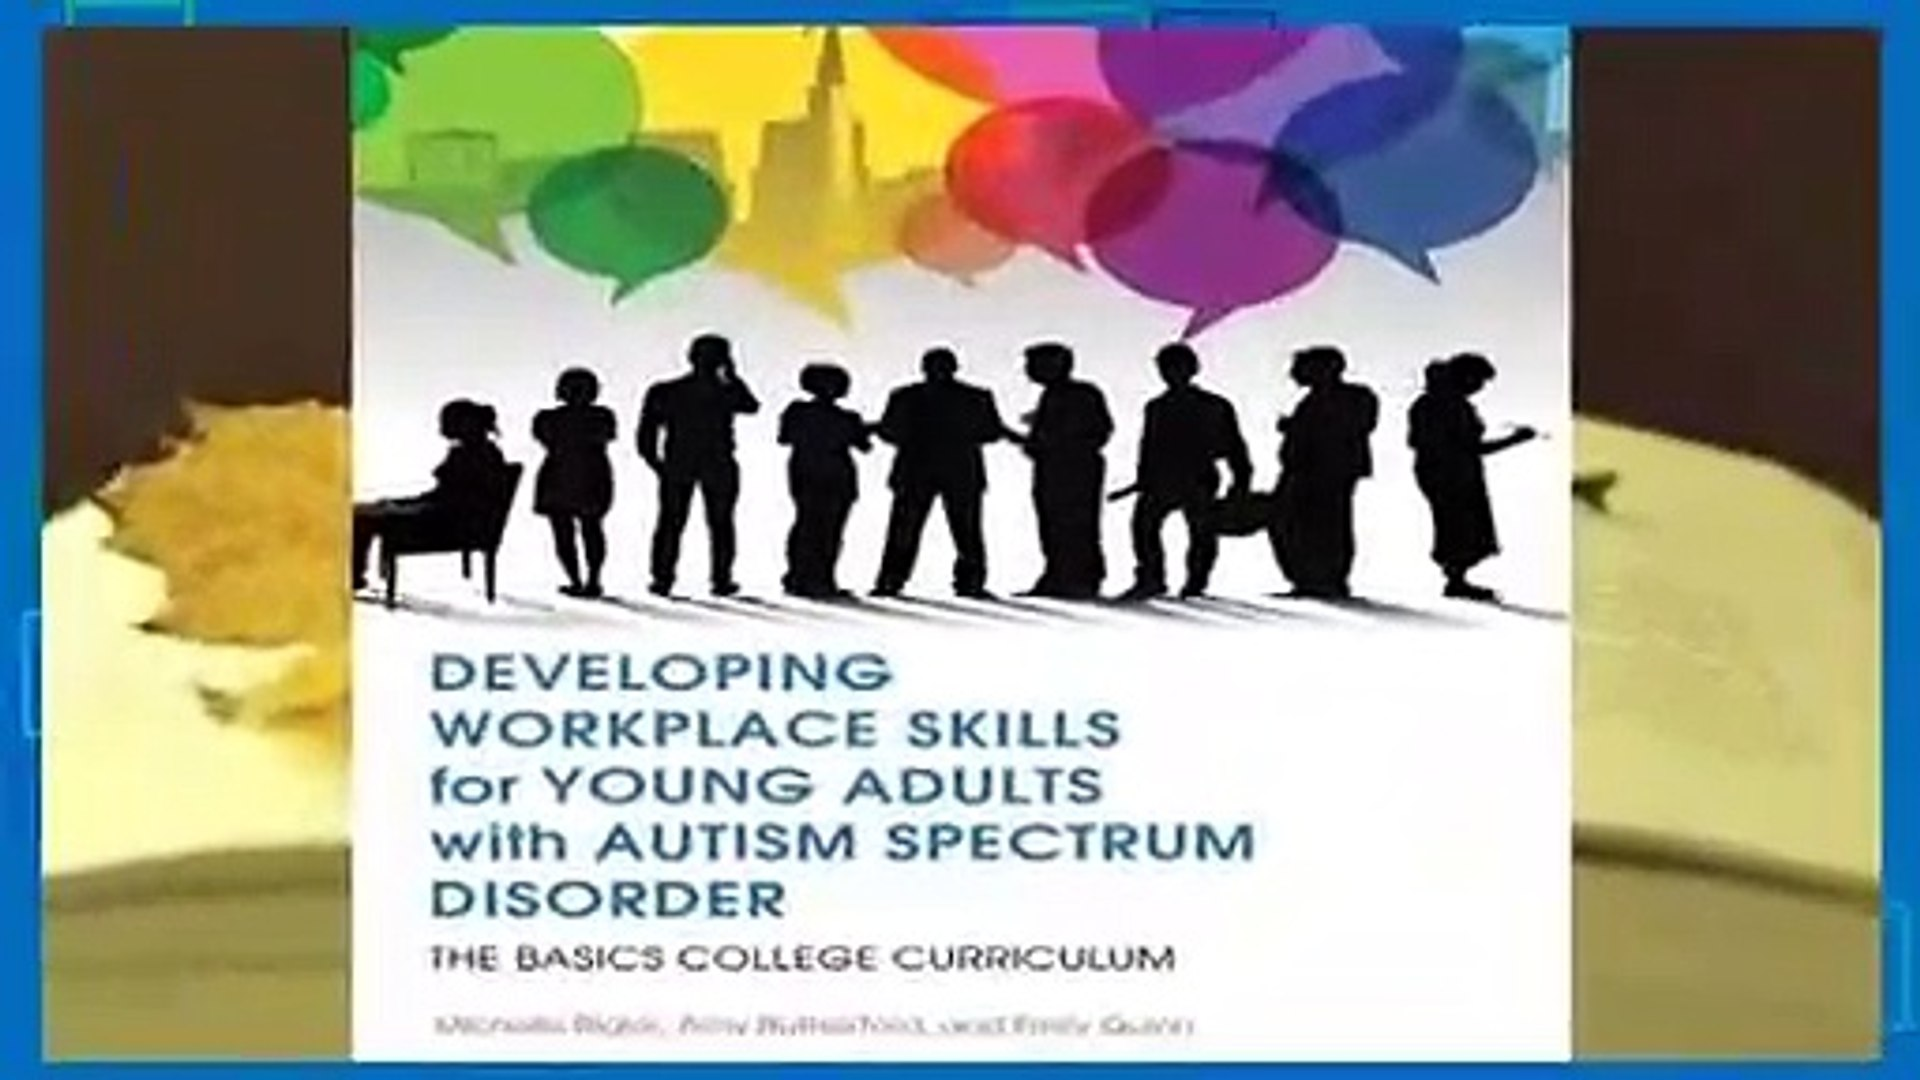 Developing Workplace Skills for Young Adults with Autism Spectrum Disorder The BASICS College Curriculum